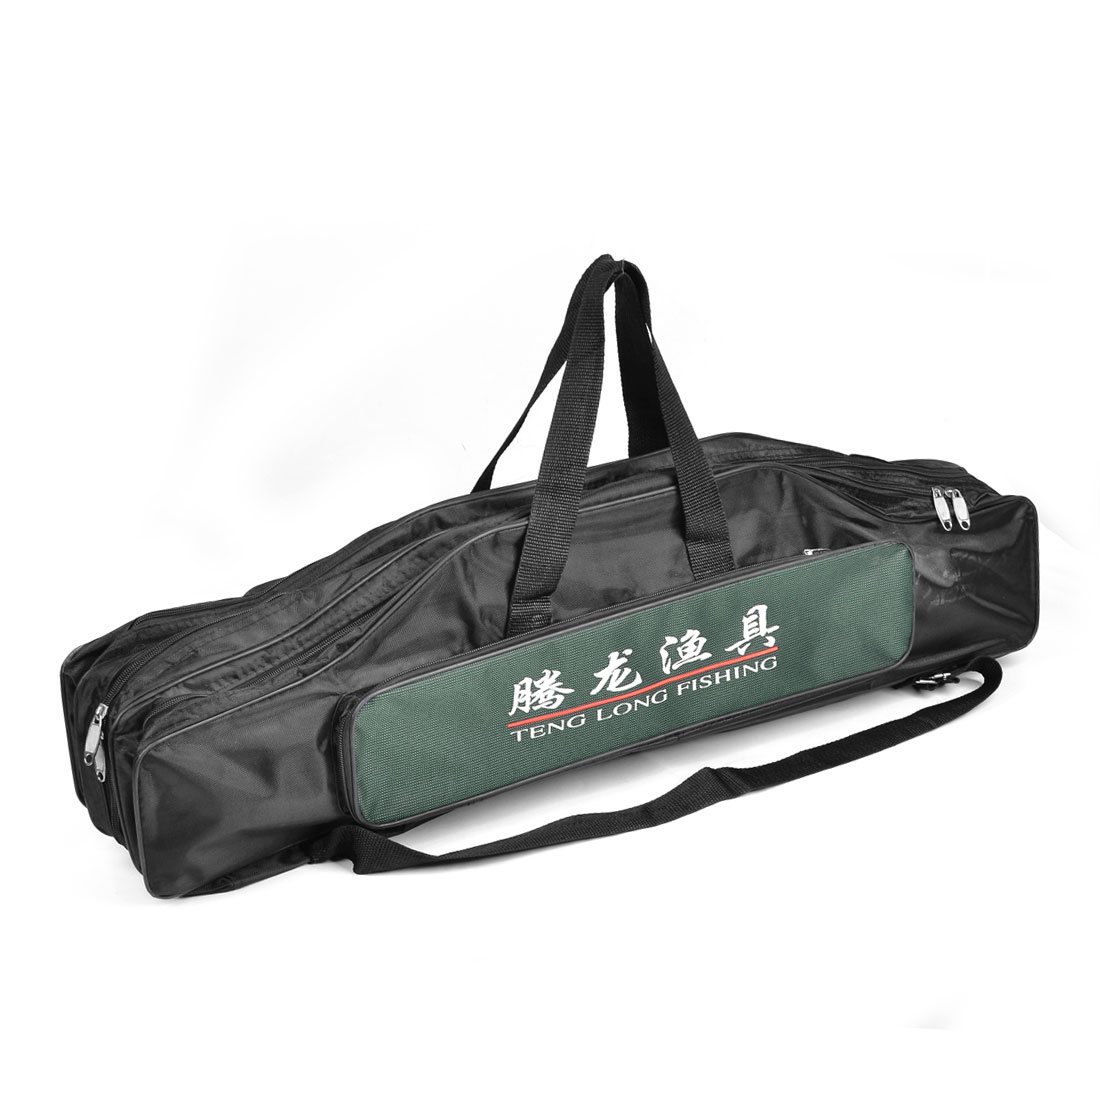 80cm Zippered 5 Compartment Nylon Angling Fishing Rod Pole Bag Black Green